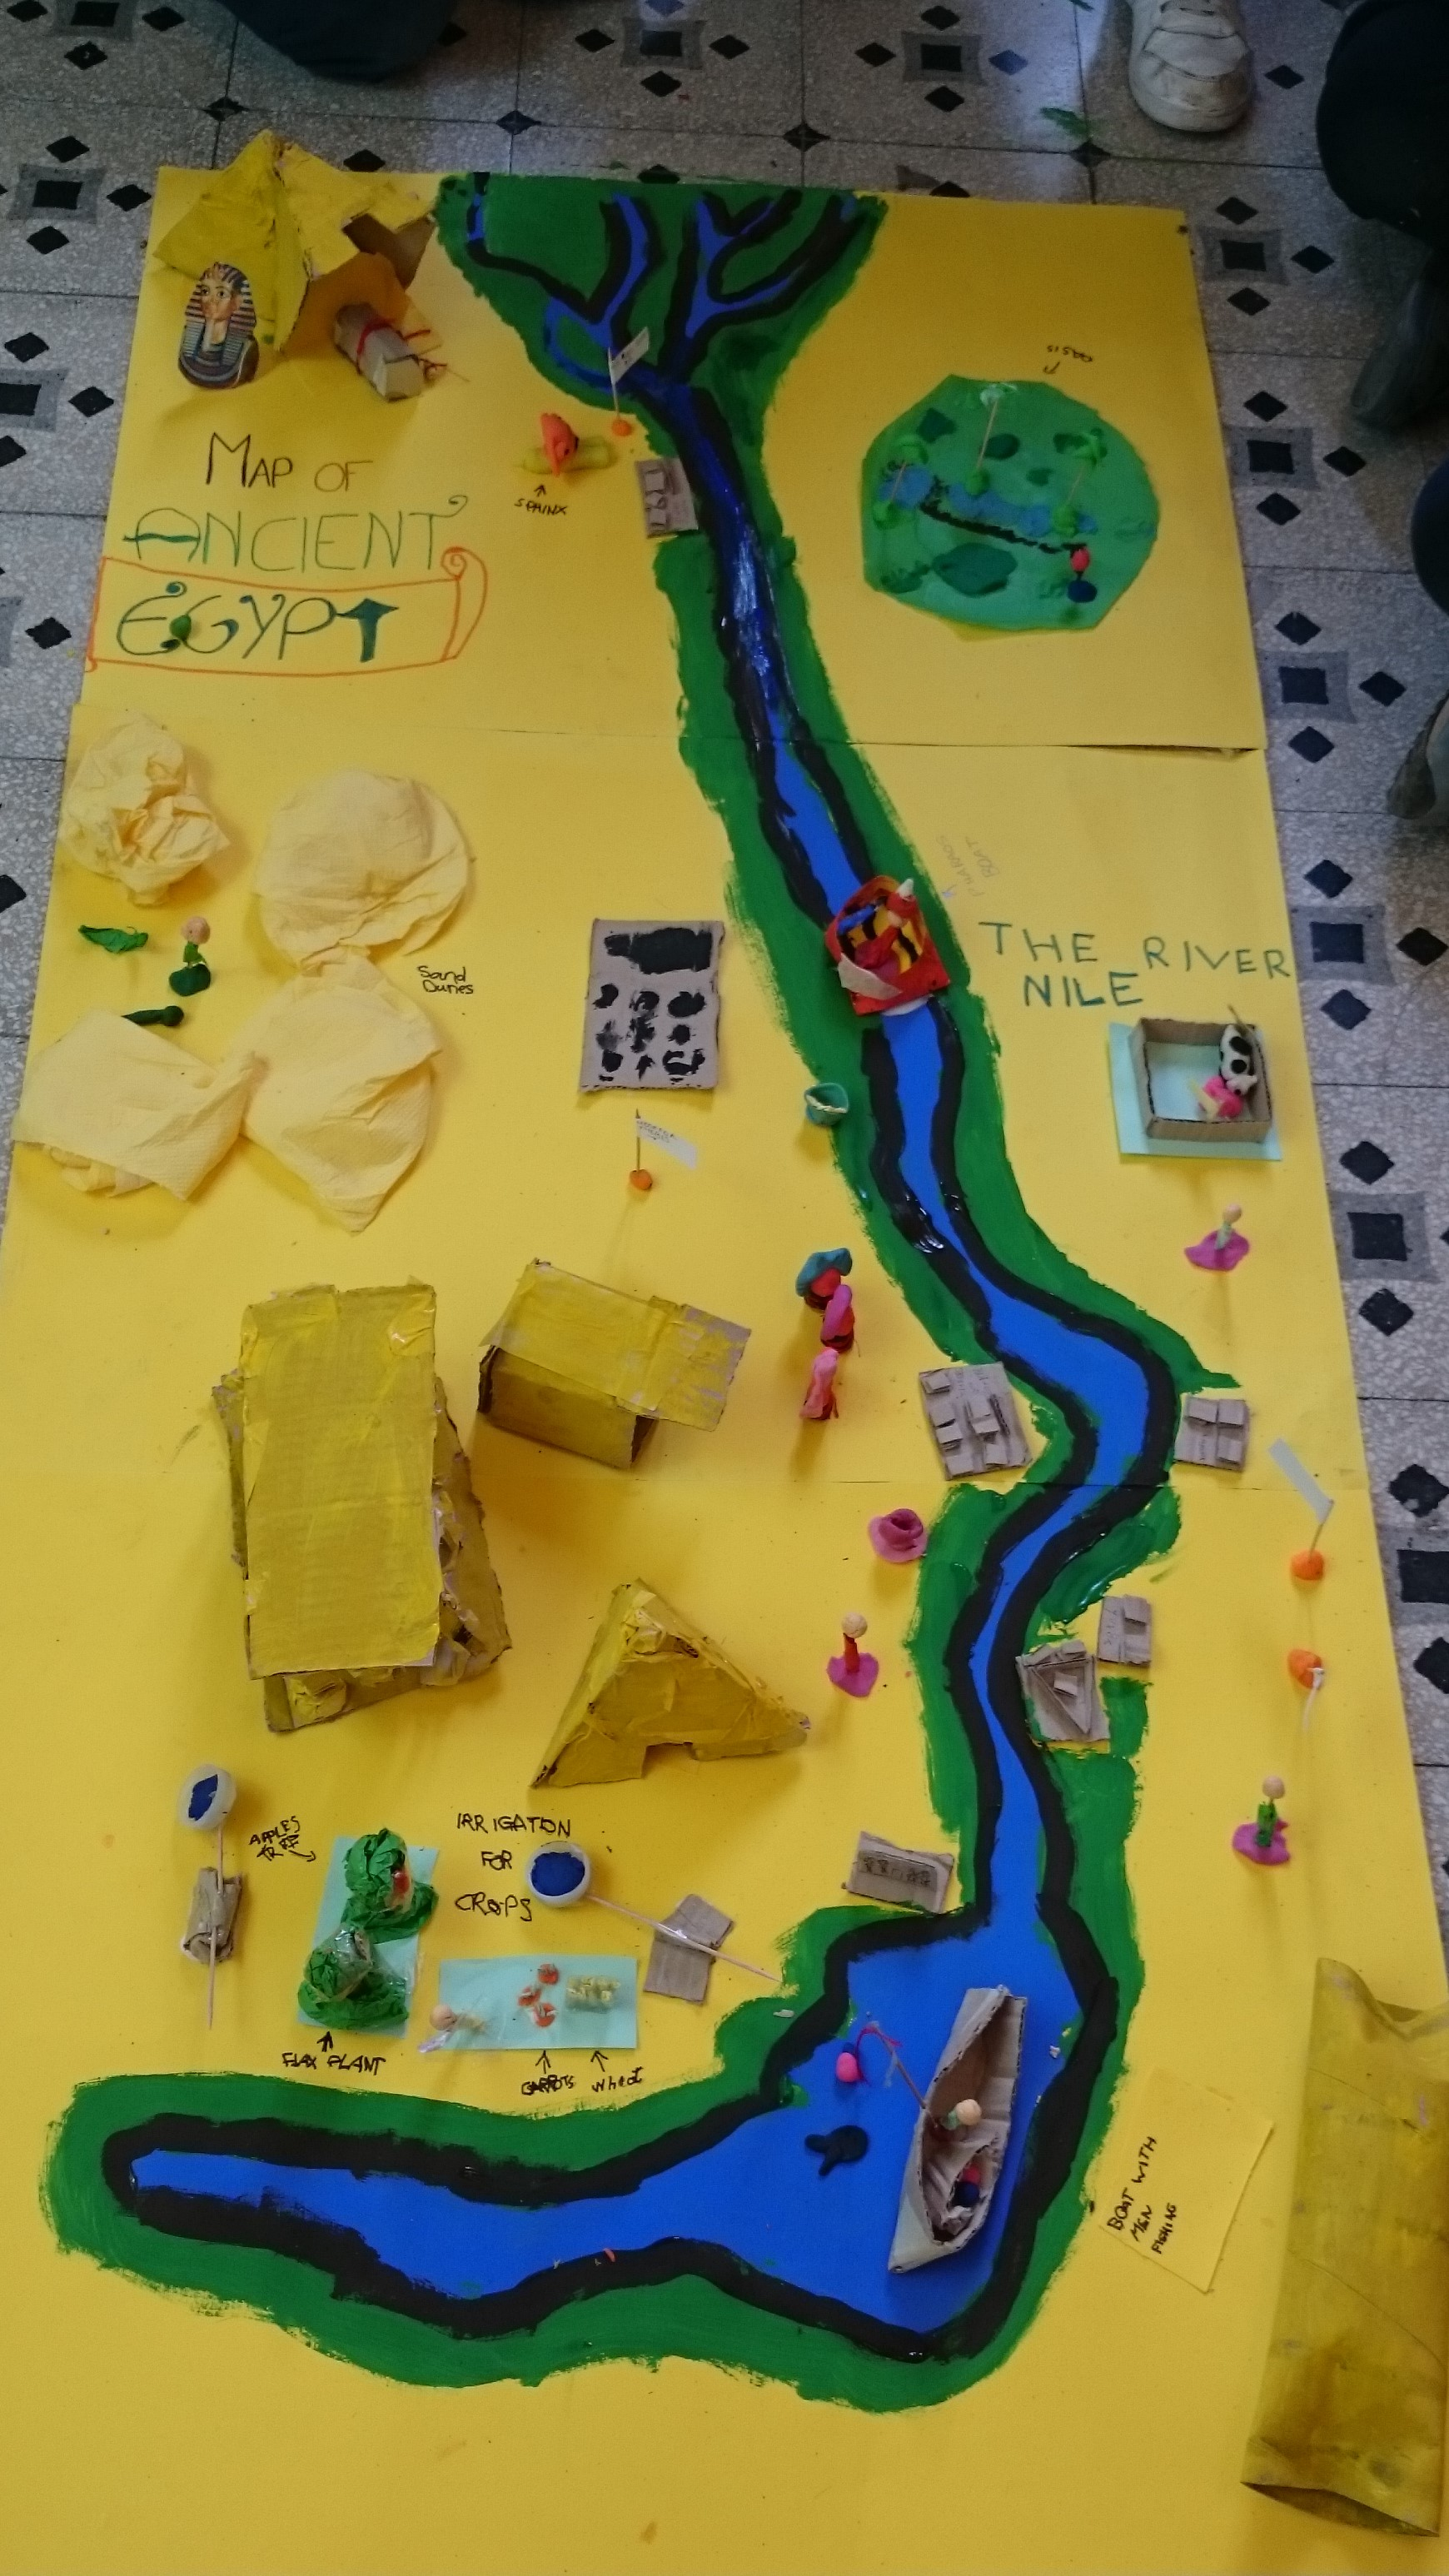 The 3d Map Of Ancient Egypt New Kids On The Blog